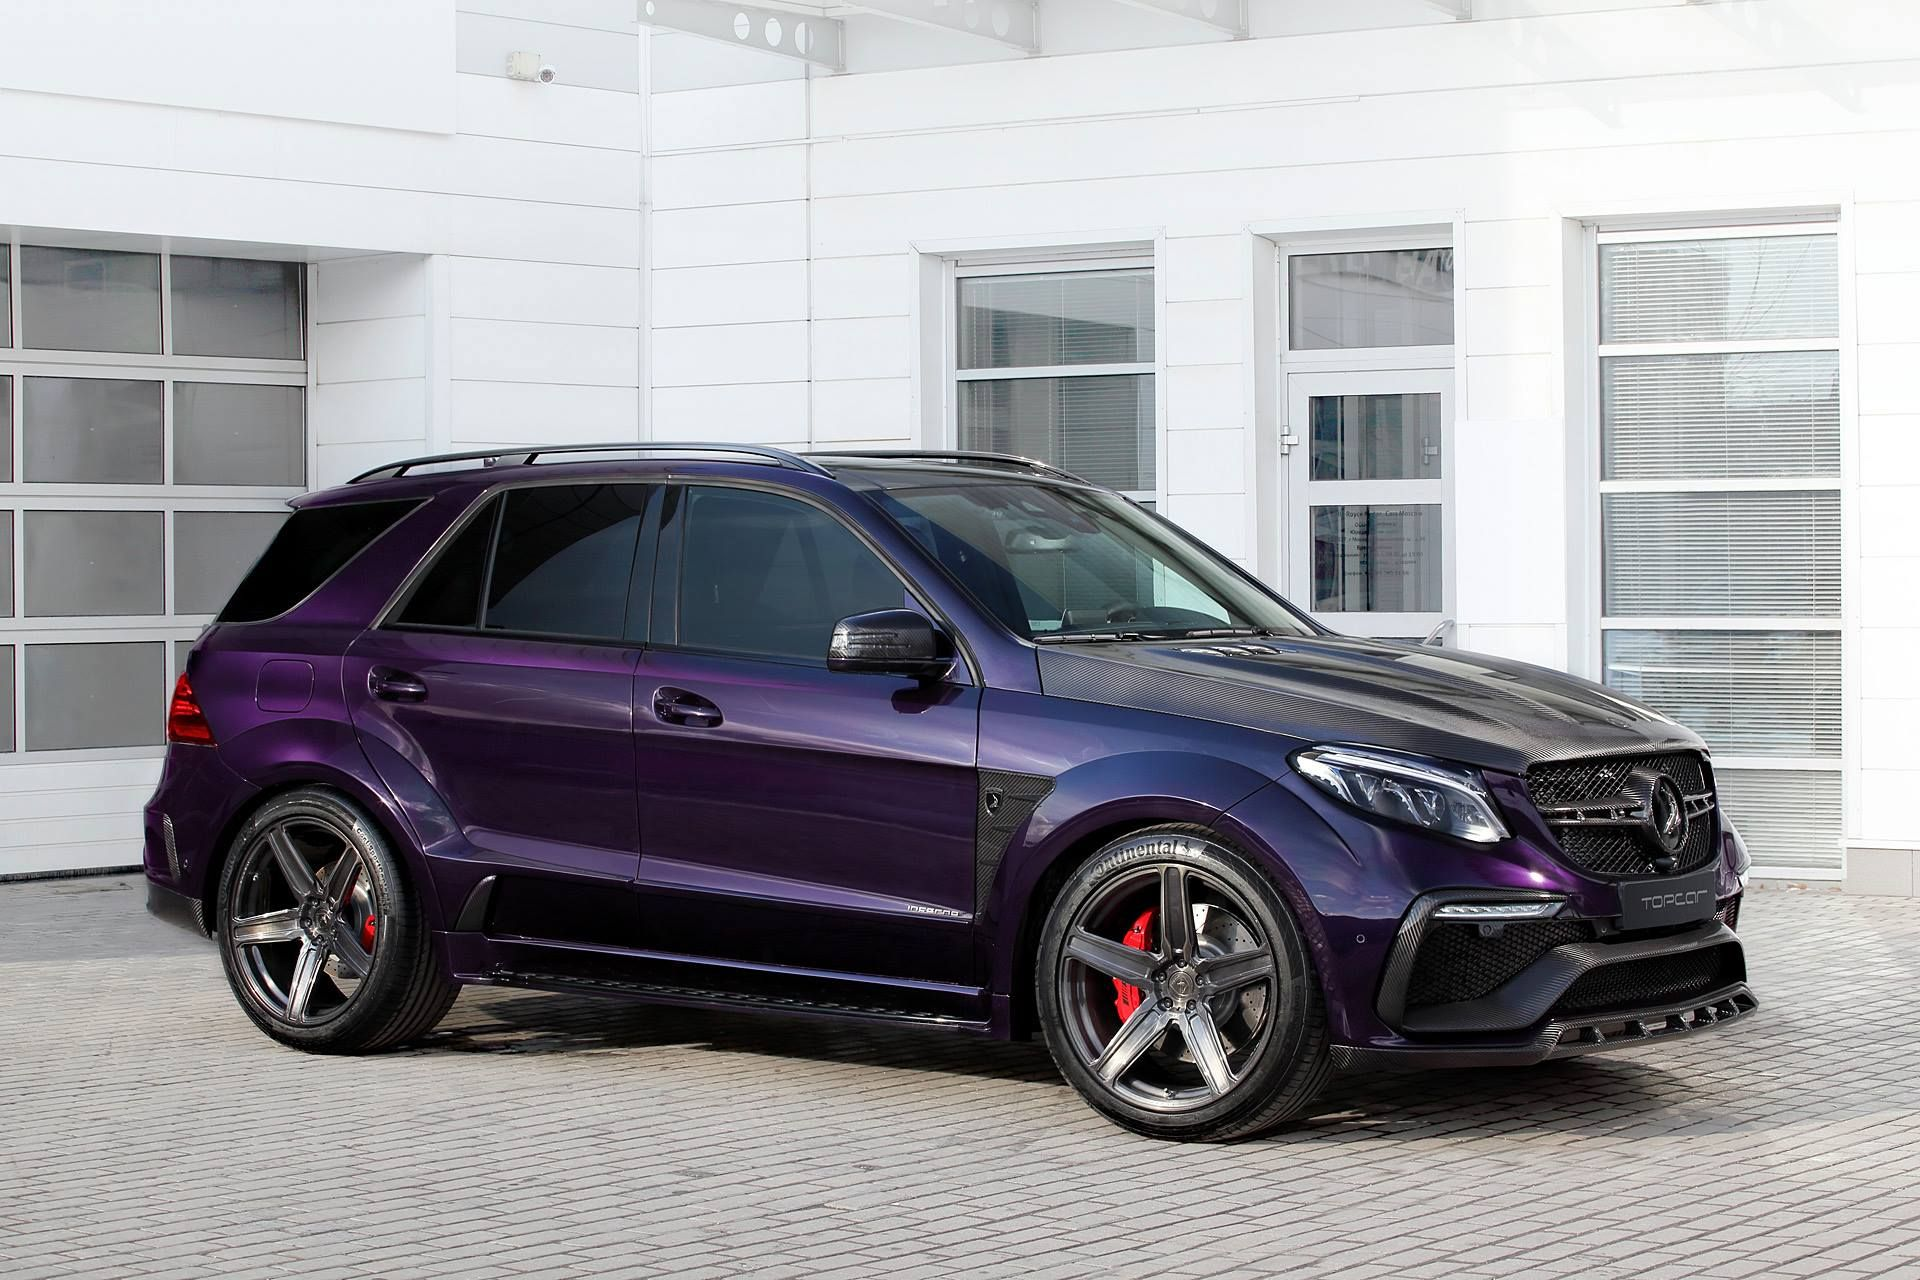 Carbon Mercedes Amg Gle 63 By Topcar Has Purple Leather Interior